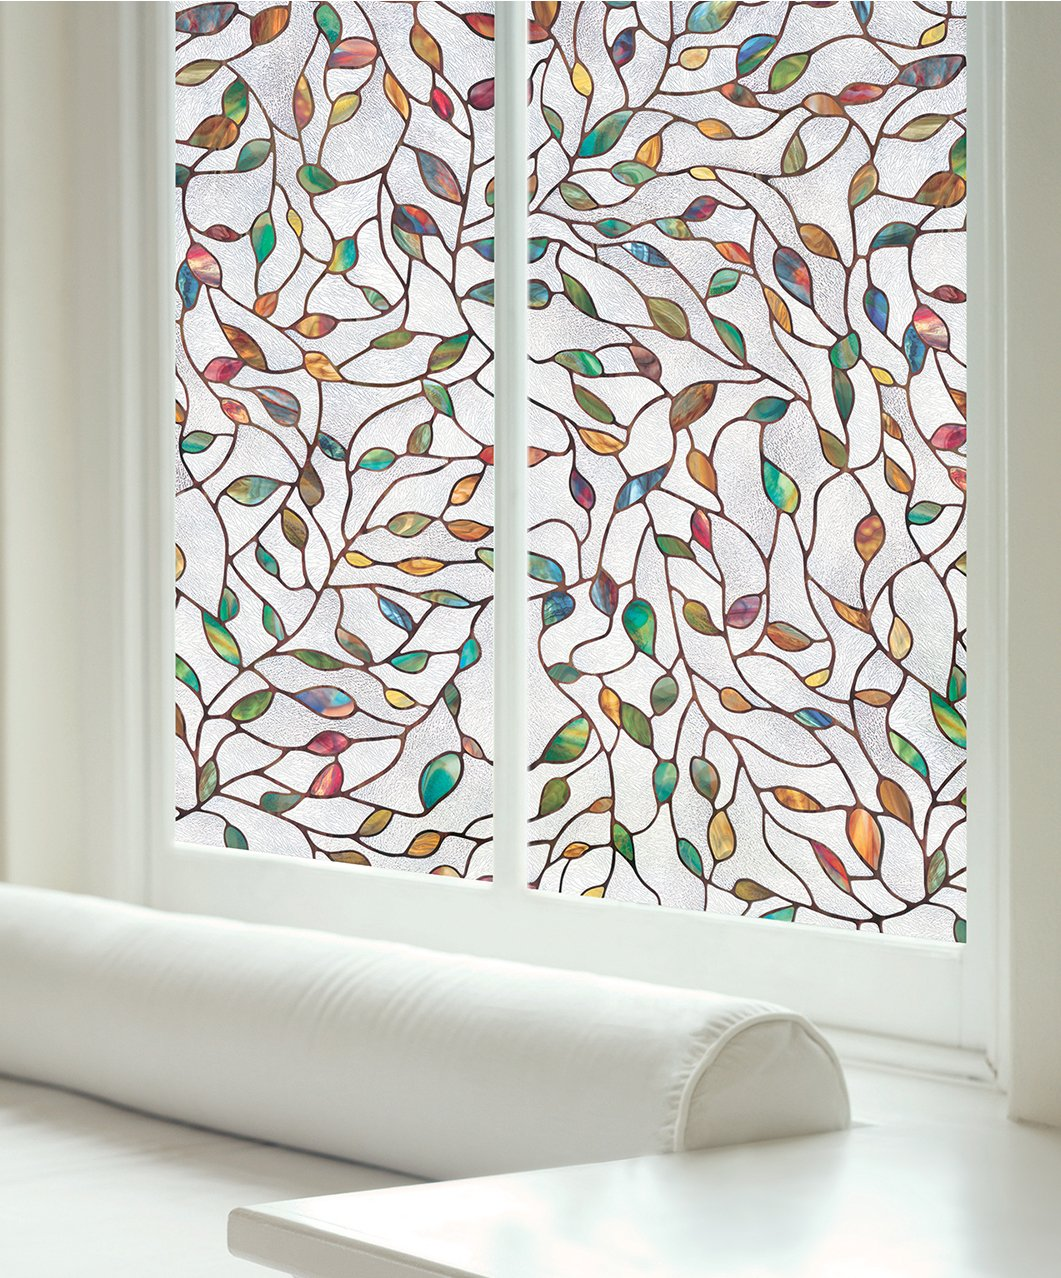 Amazing Decorative Window Film Ideas Amazon.com